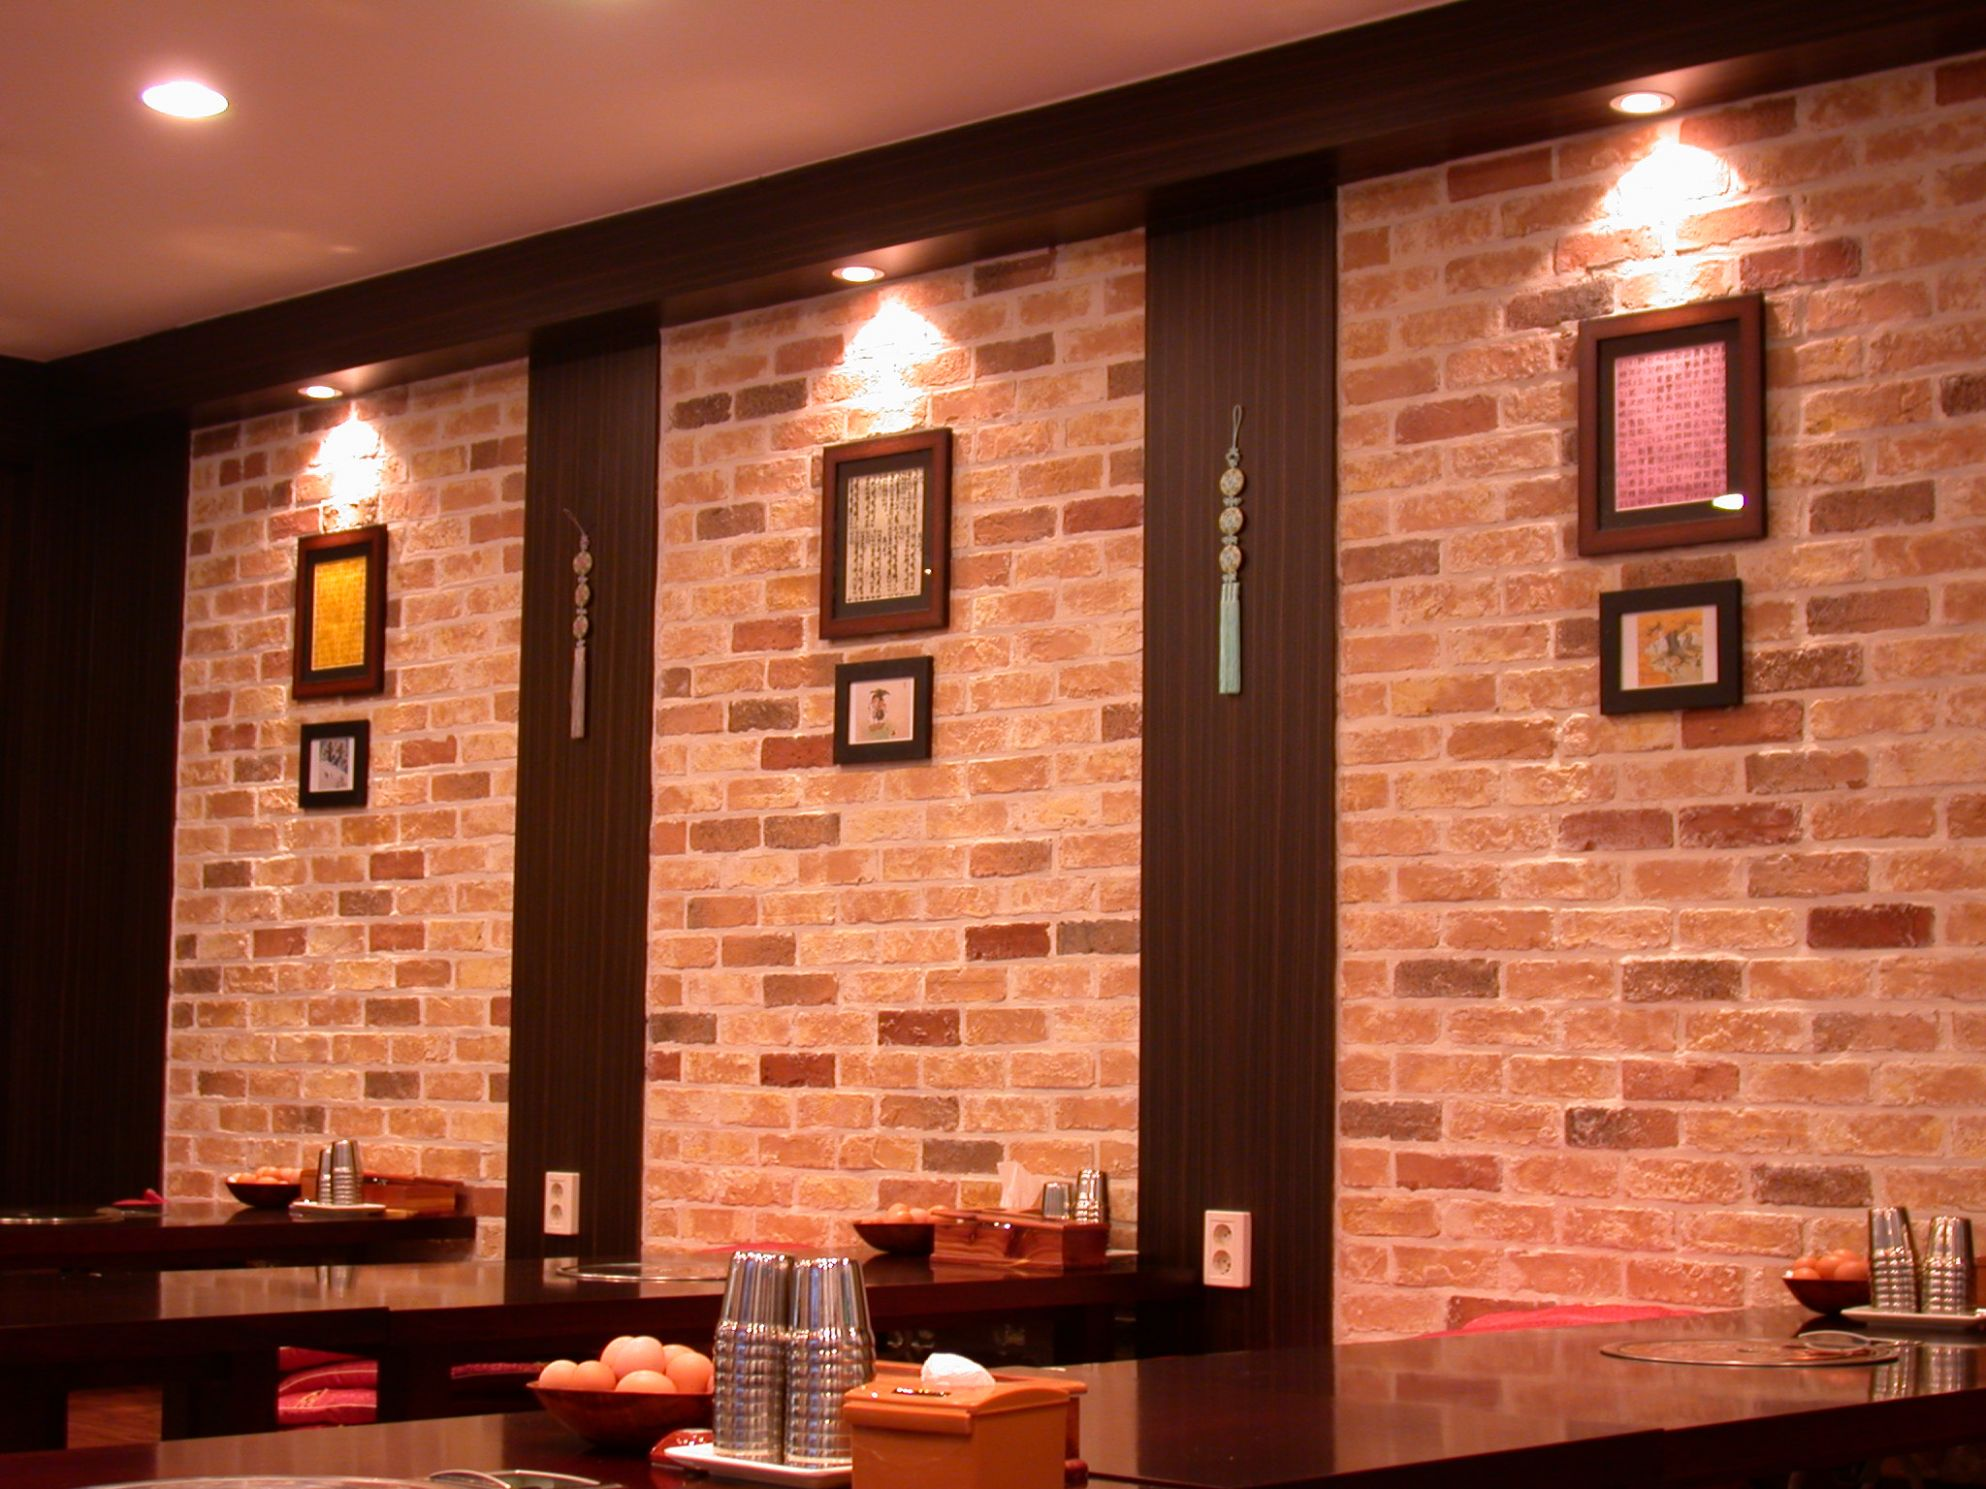 wall: Wall Art Restaurant Wall Design